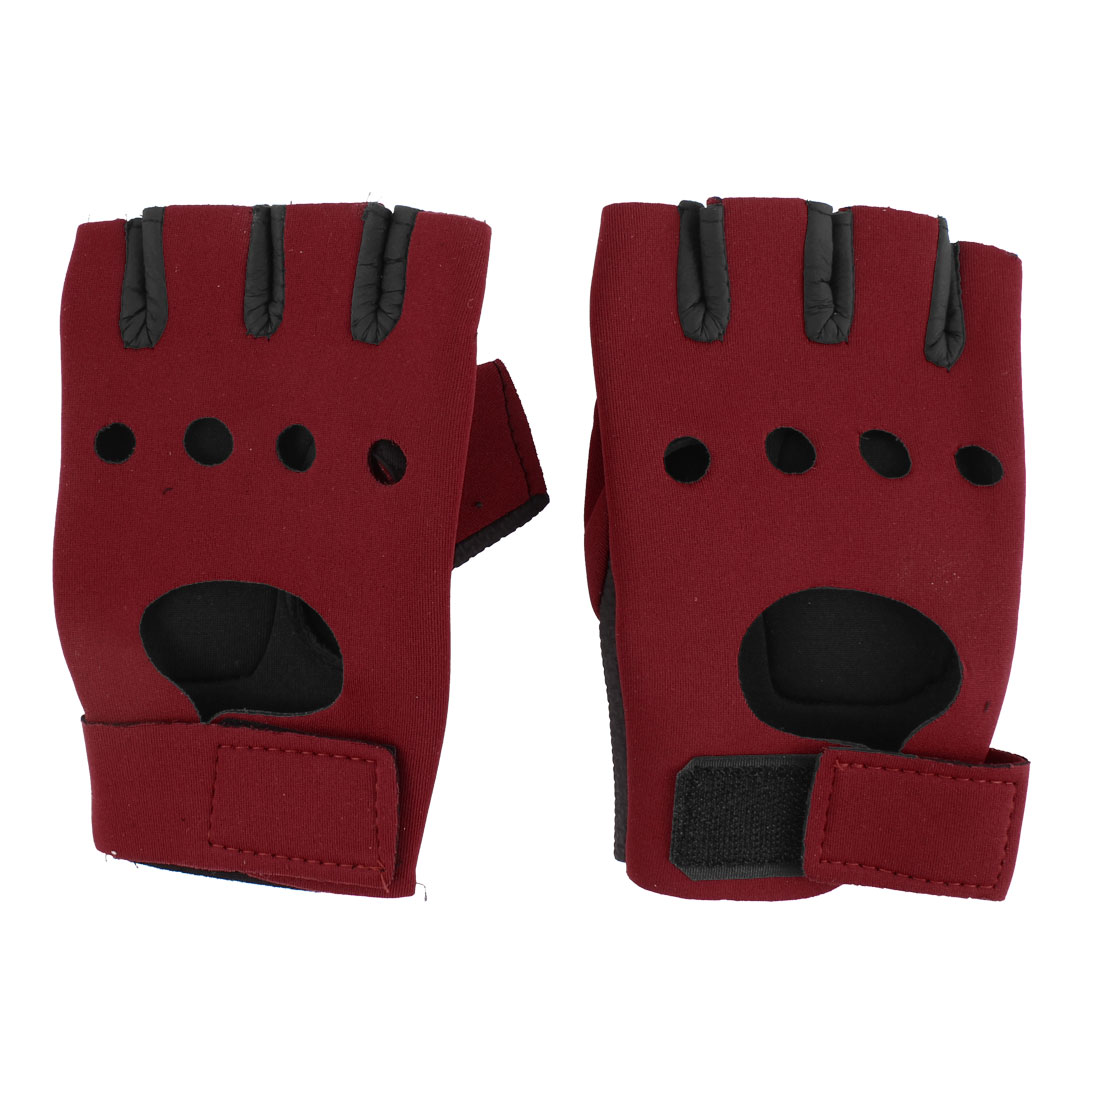 Half Finger Nonslip Palm Sports Gloves Black Red